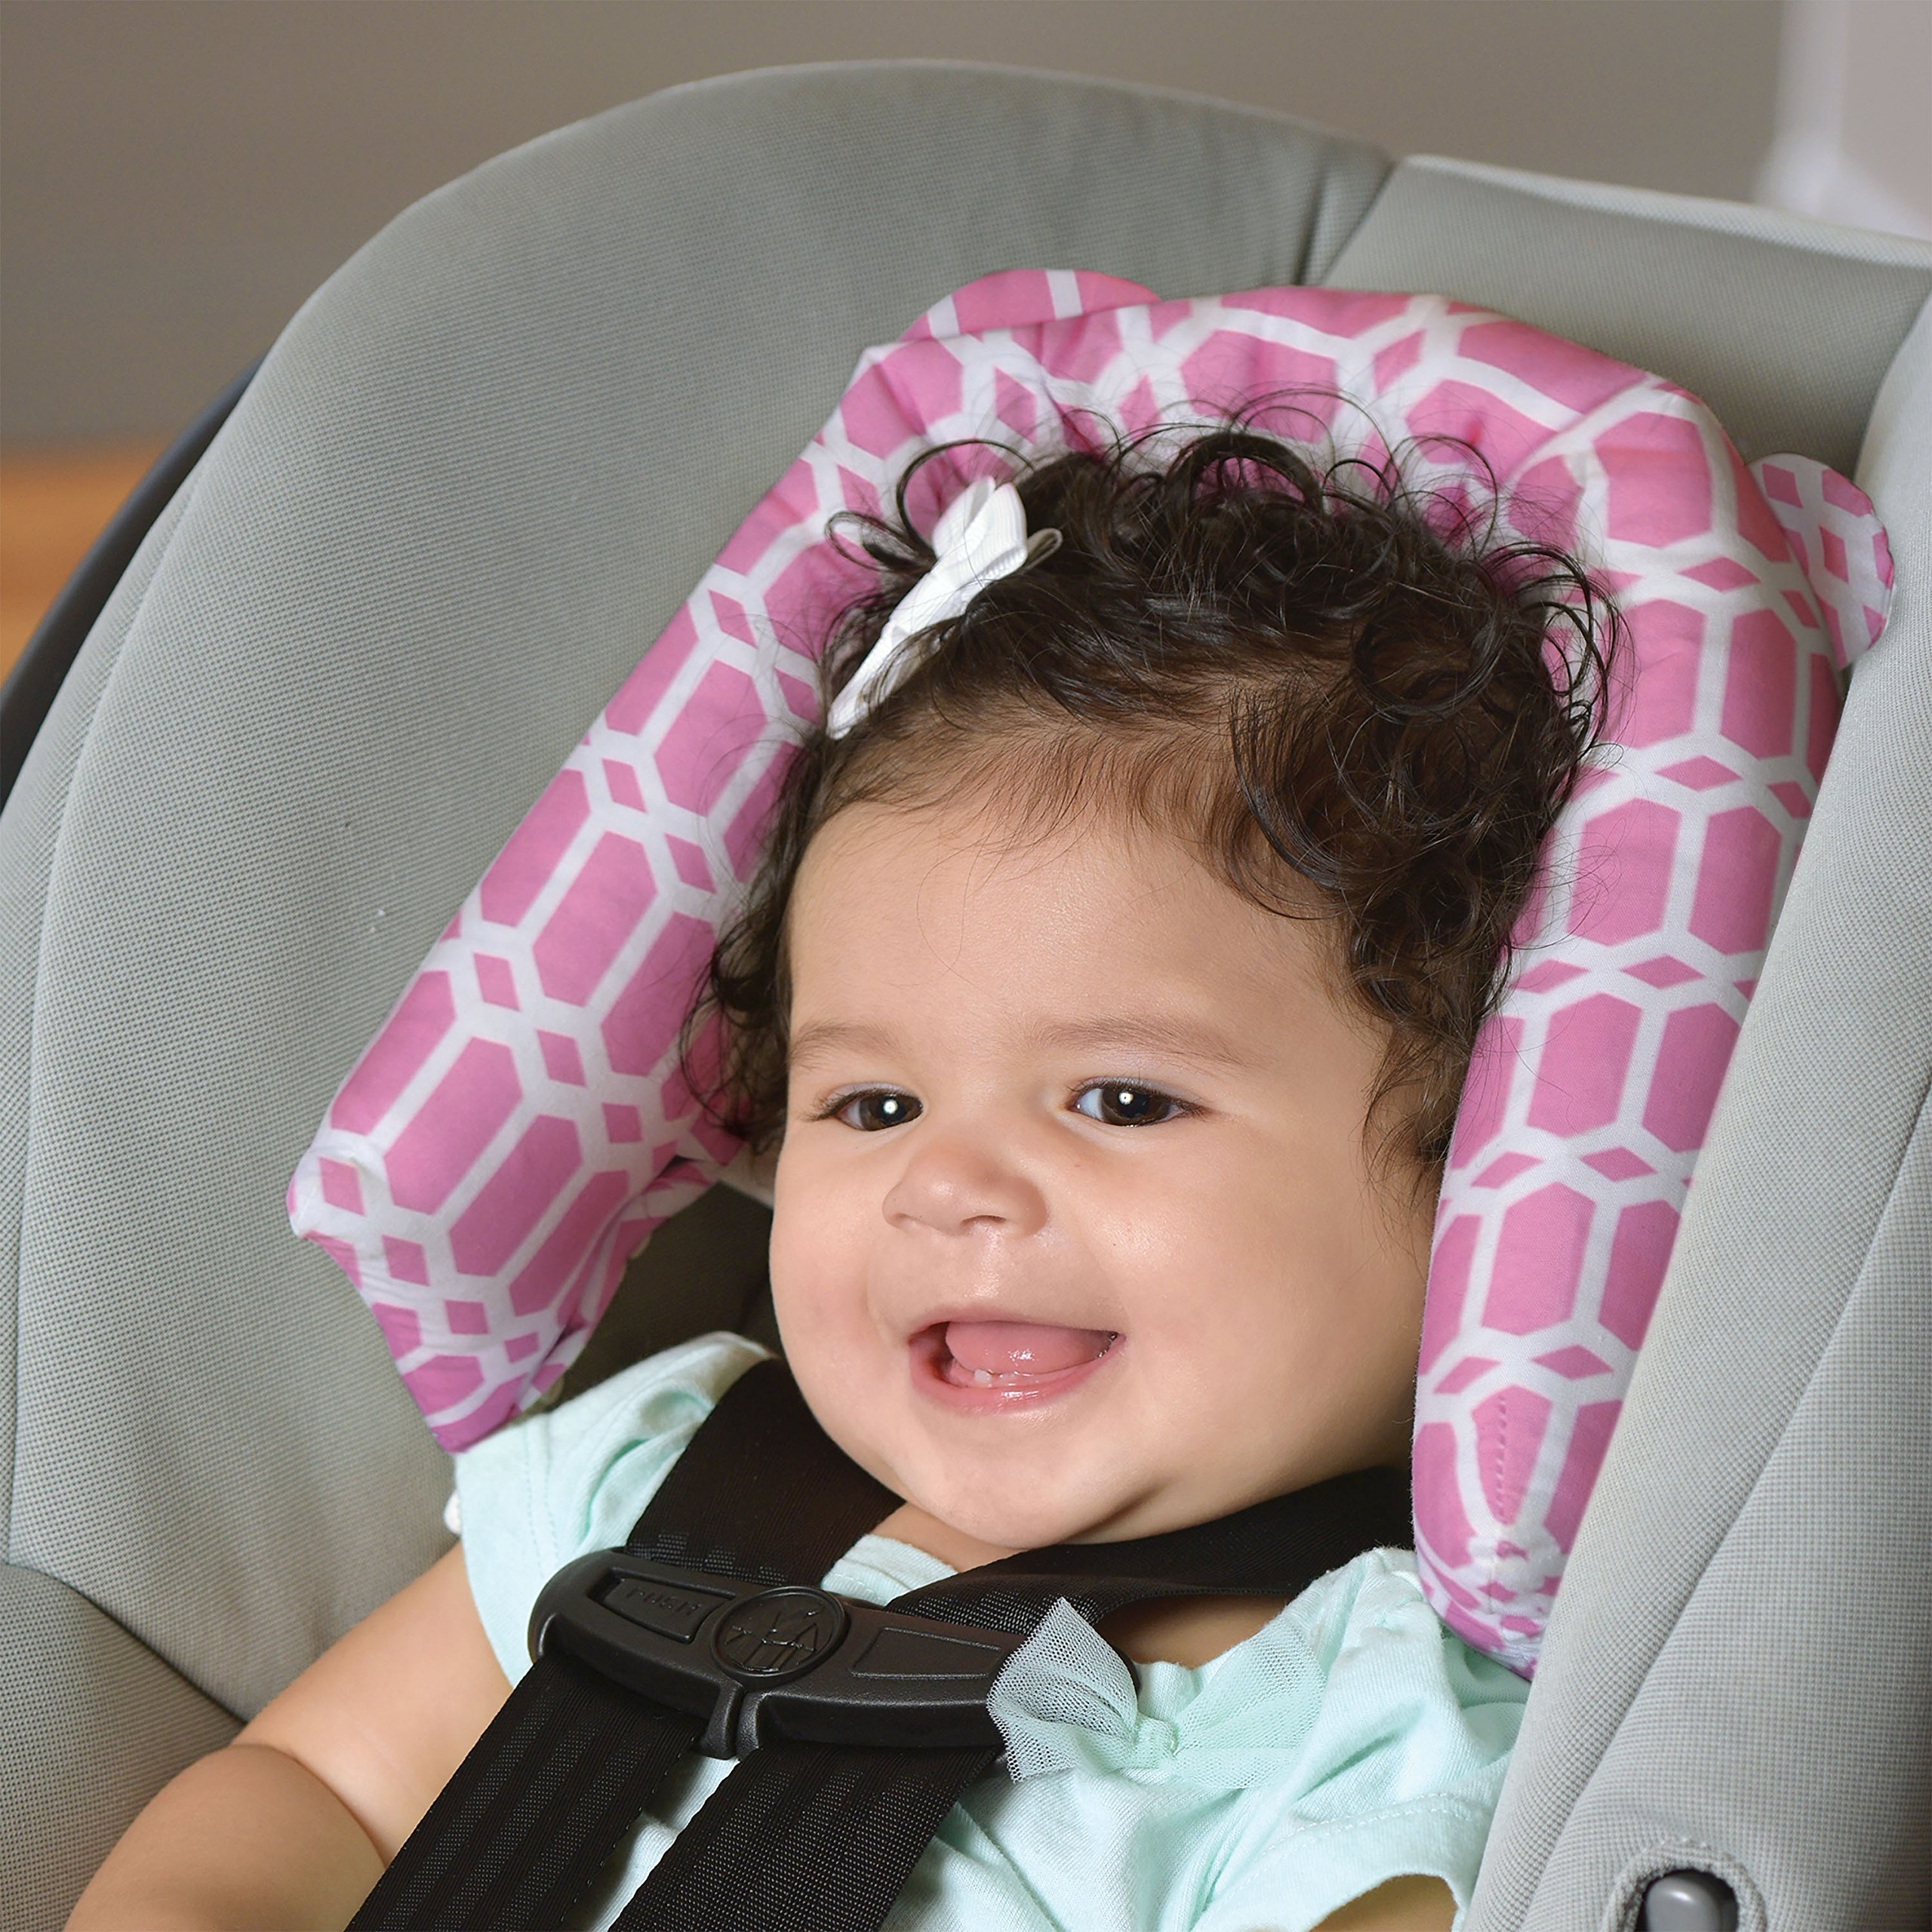 Goldbug 2-in-1 Infant Car Seat Head Support Pink, White by Goldbug (Image #3)